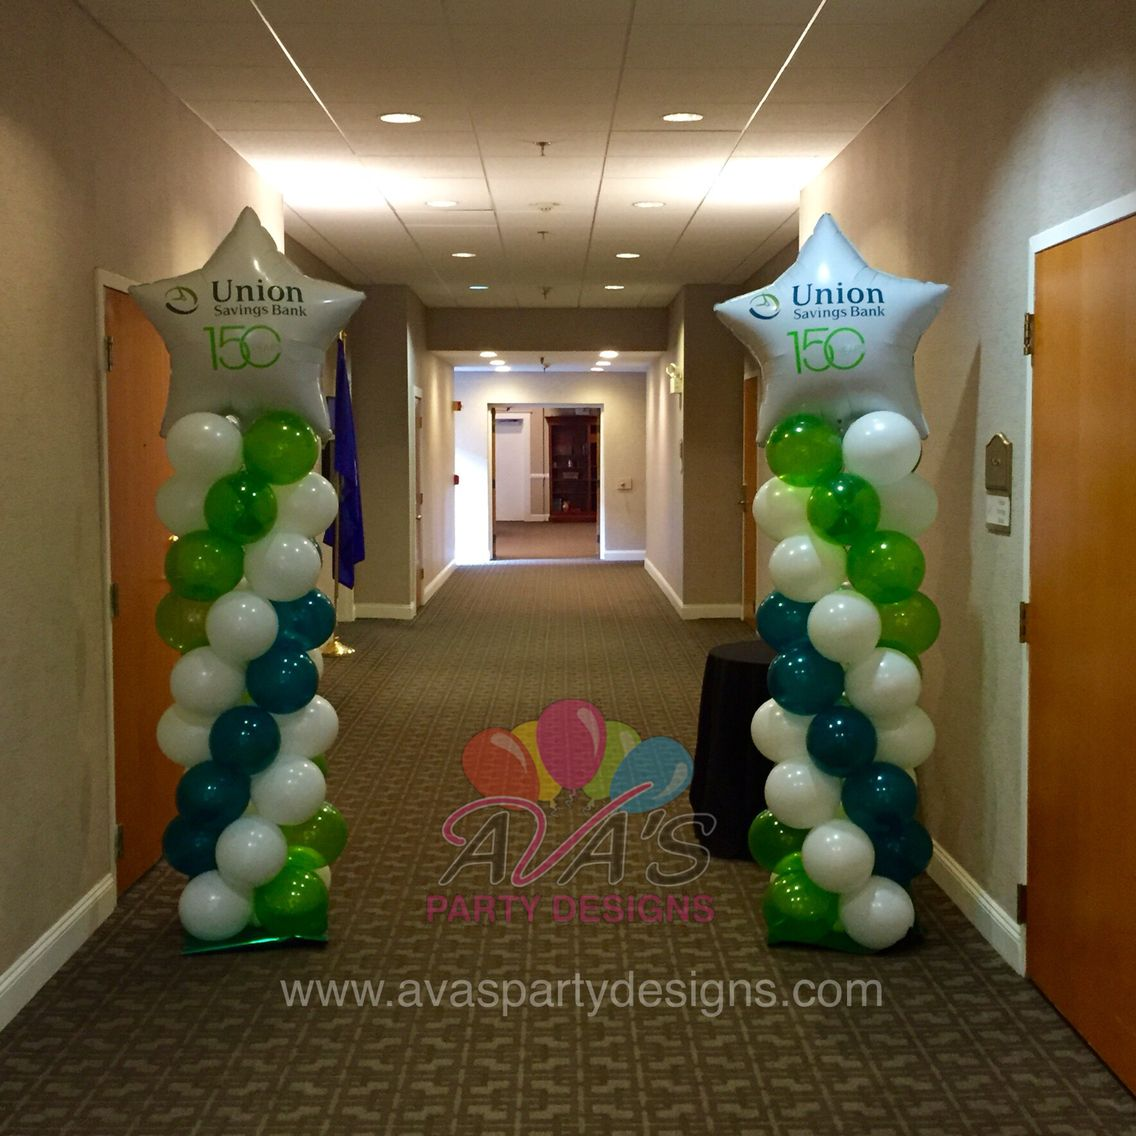 Personalized 150th anniversary balloon column for union for Balloon decoration companies